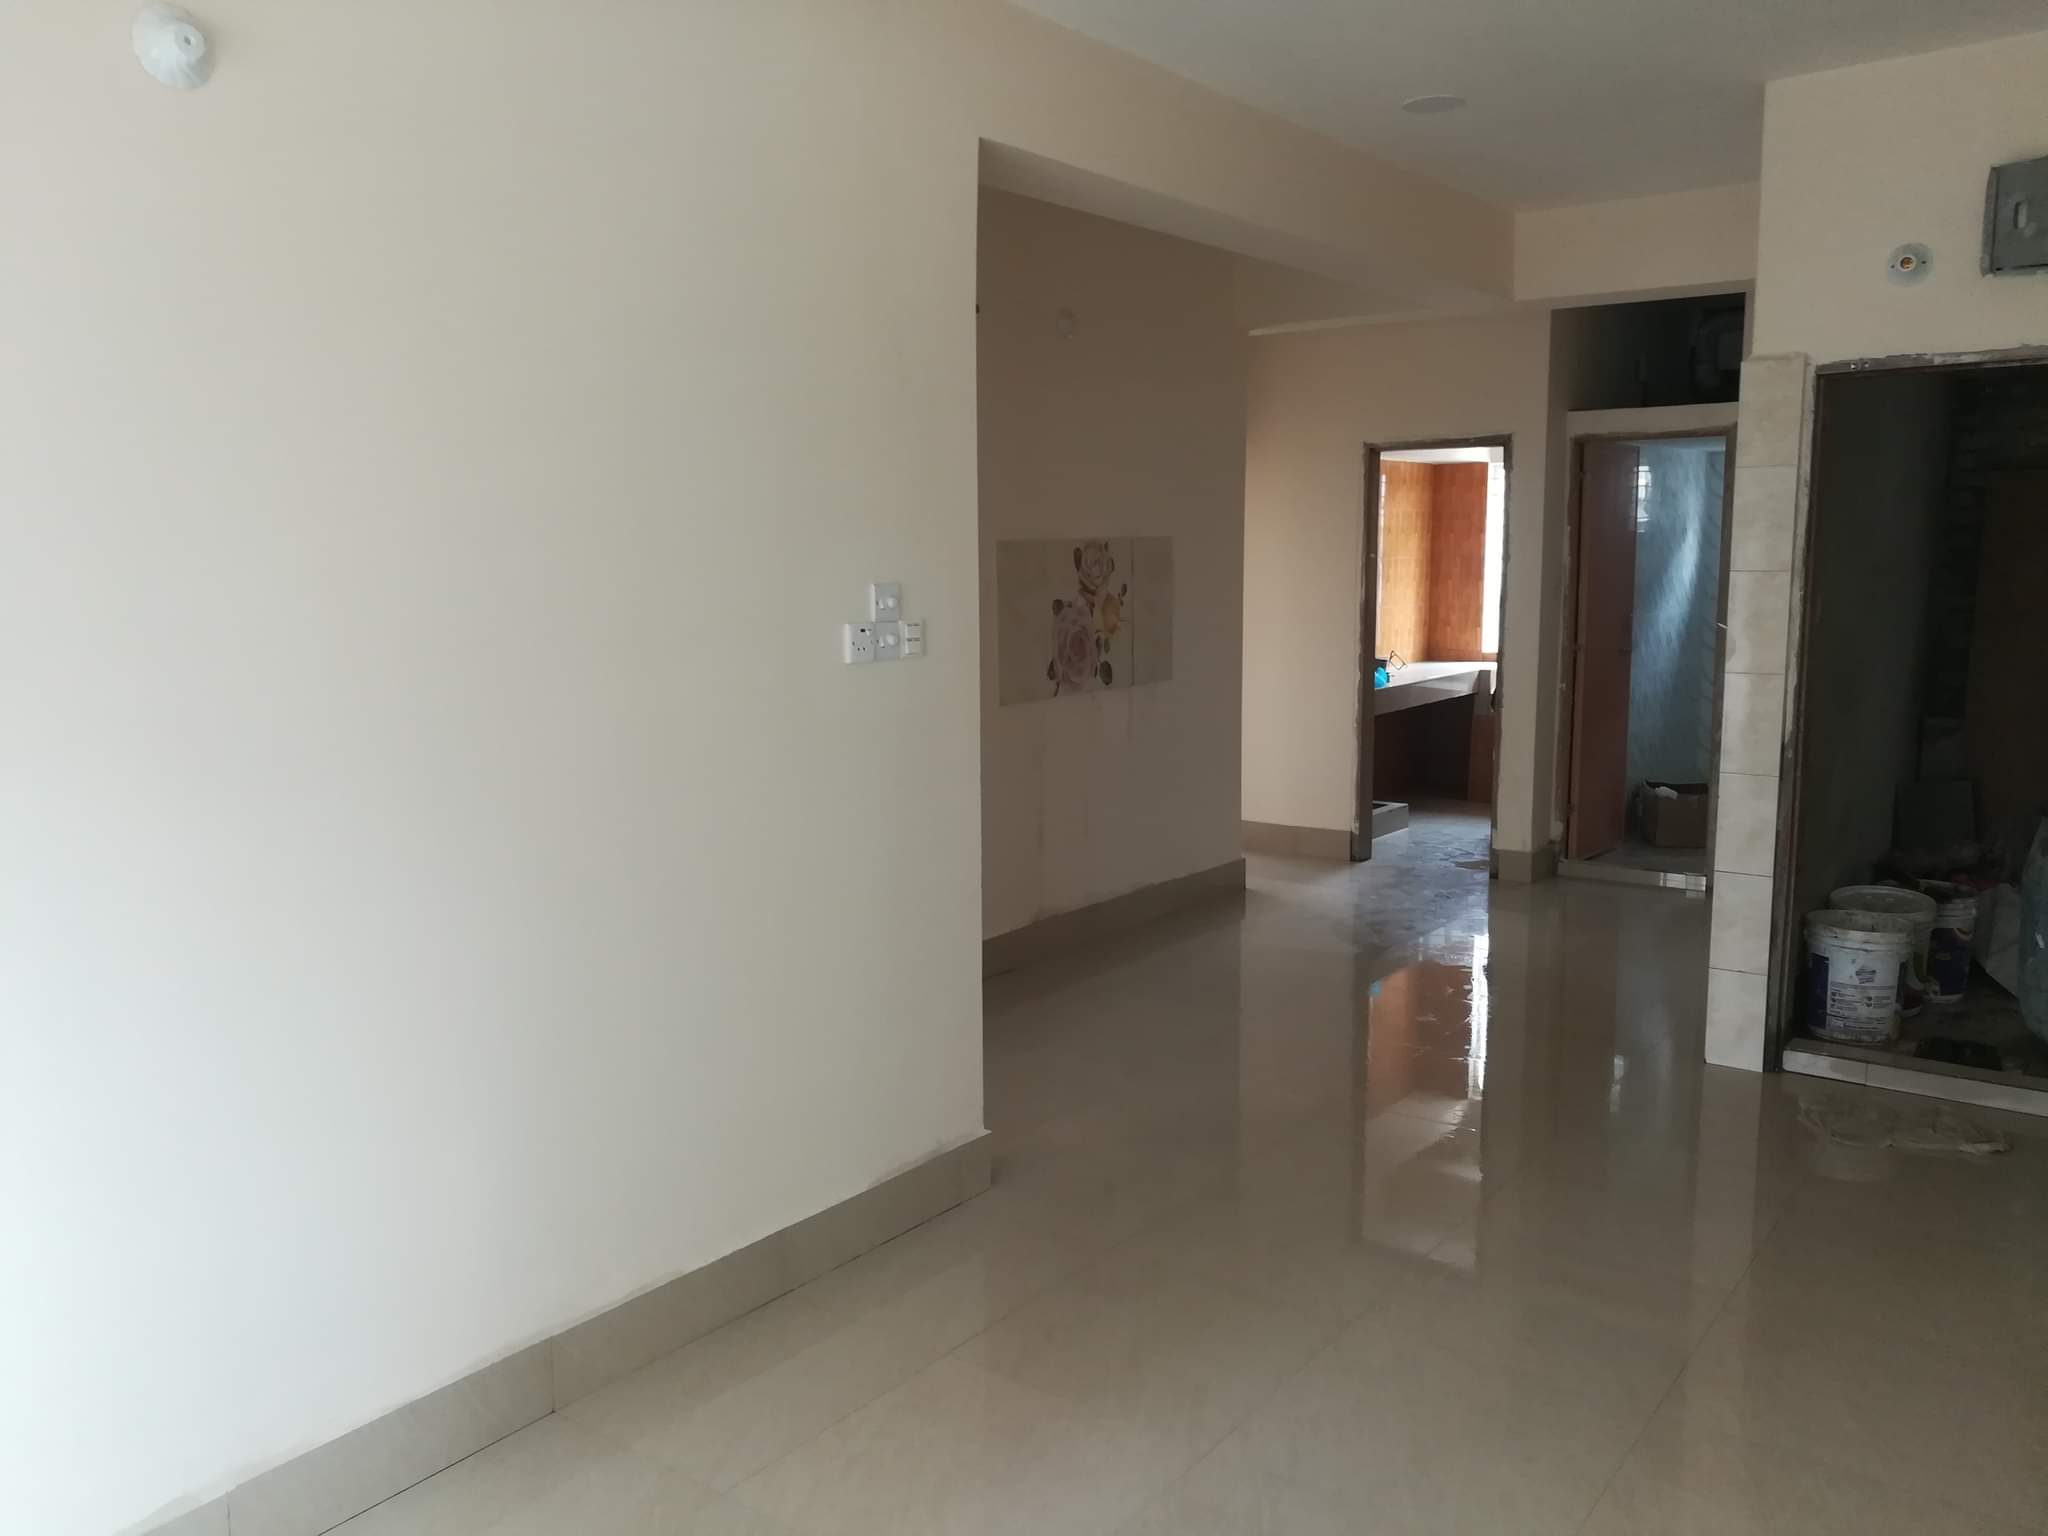 1077-sft-apartment-for-sale-in-khilgaon-5th-floor-615424